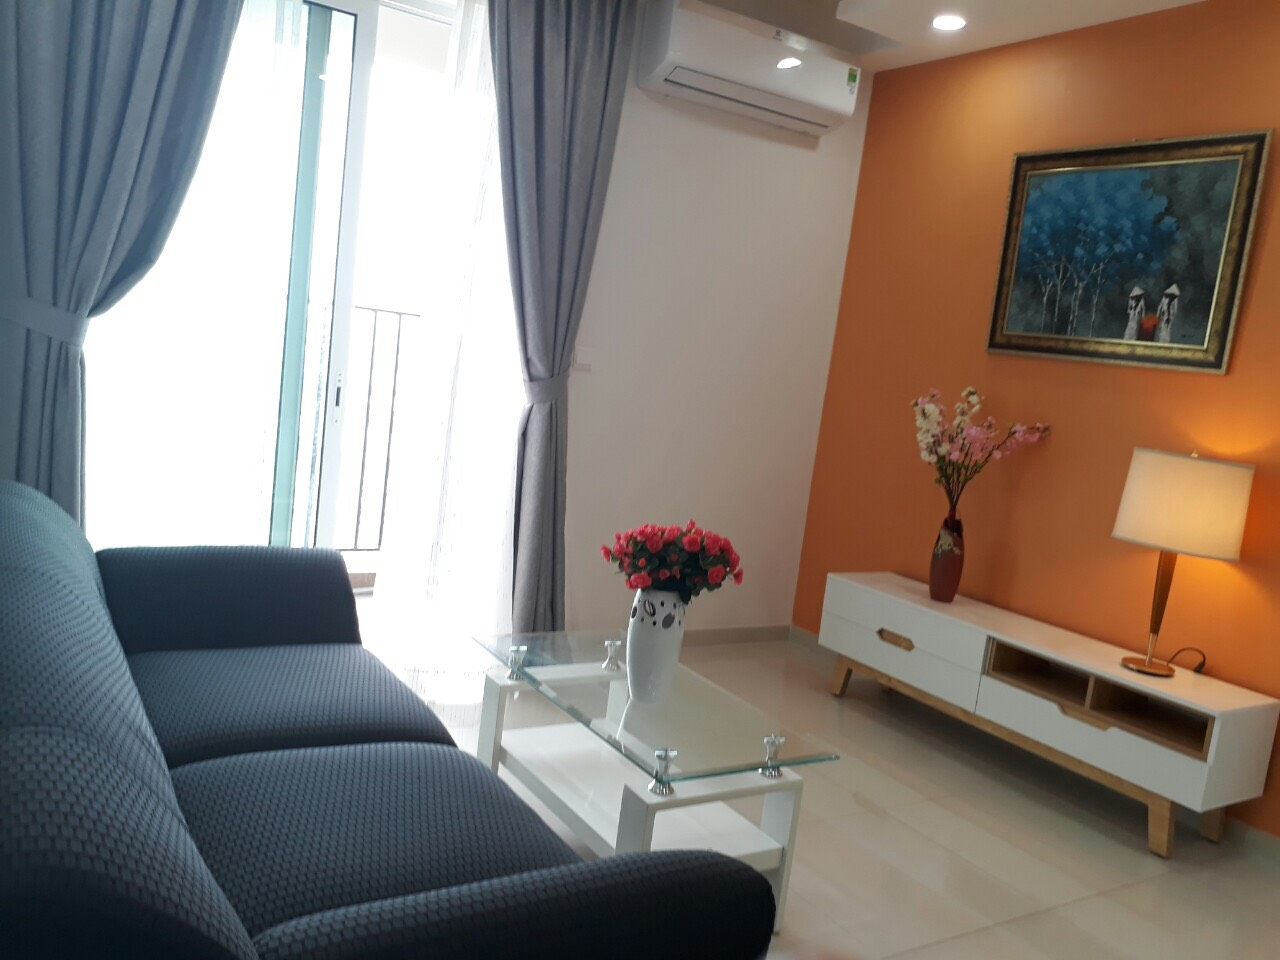 apartment for rent in district 2 hcmc vista verde apartment for rent in district 2 hcmc D221415 (9)